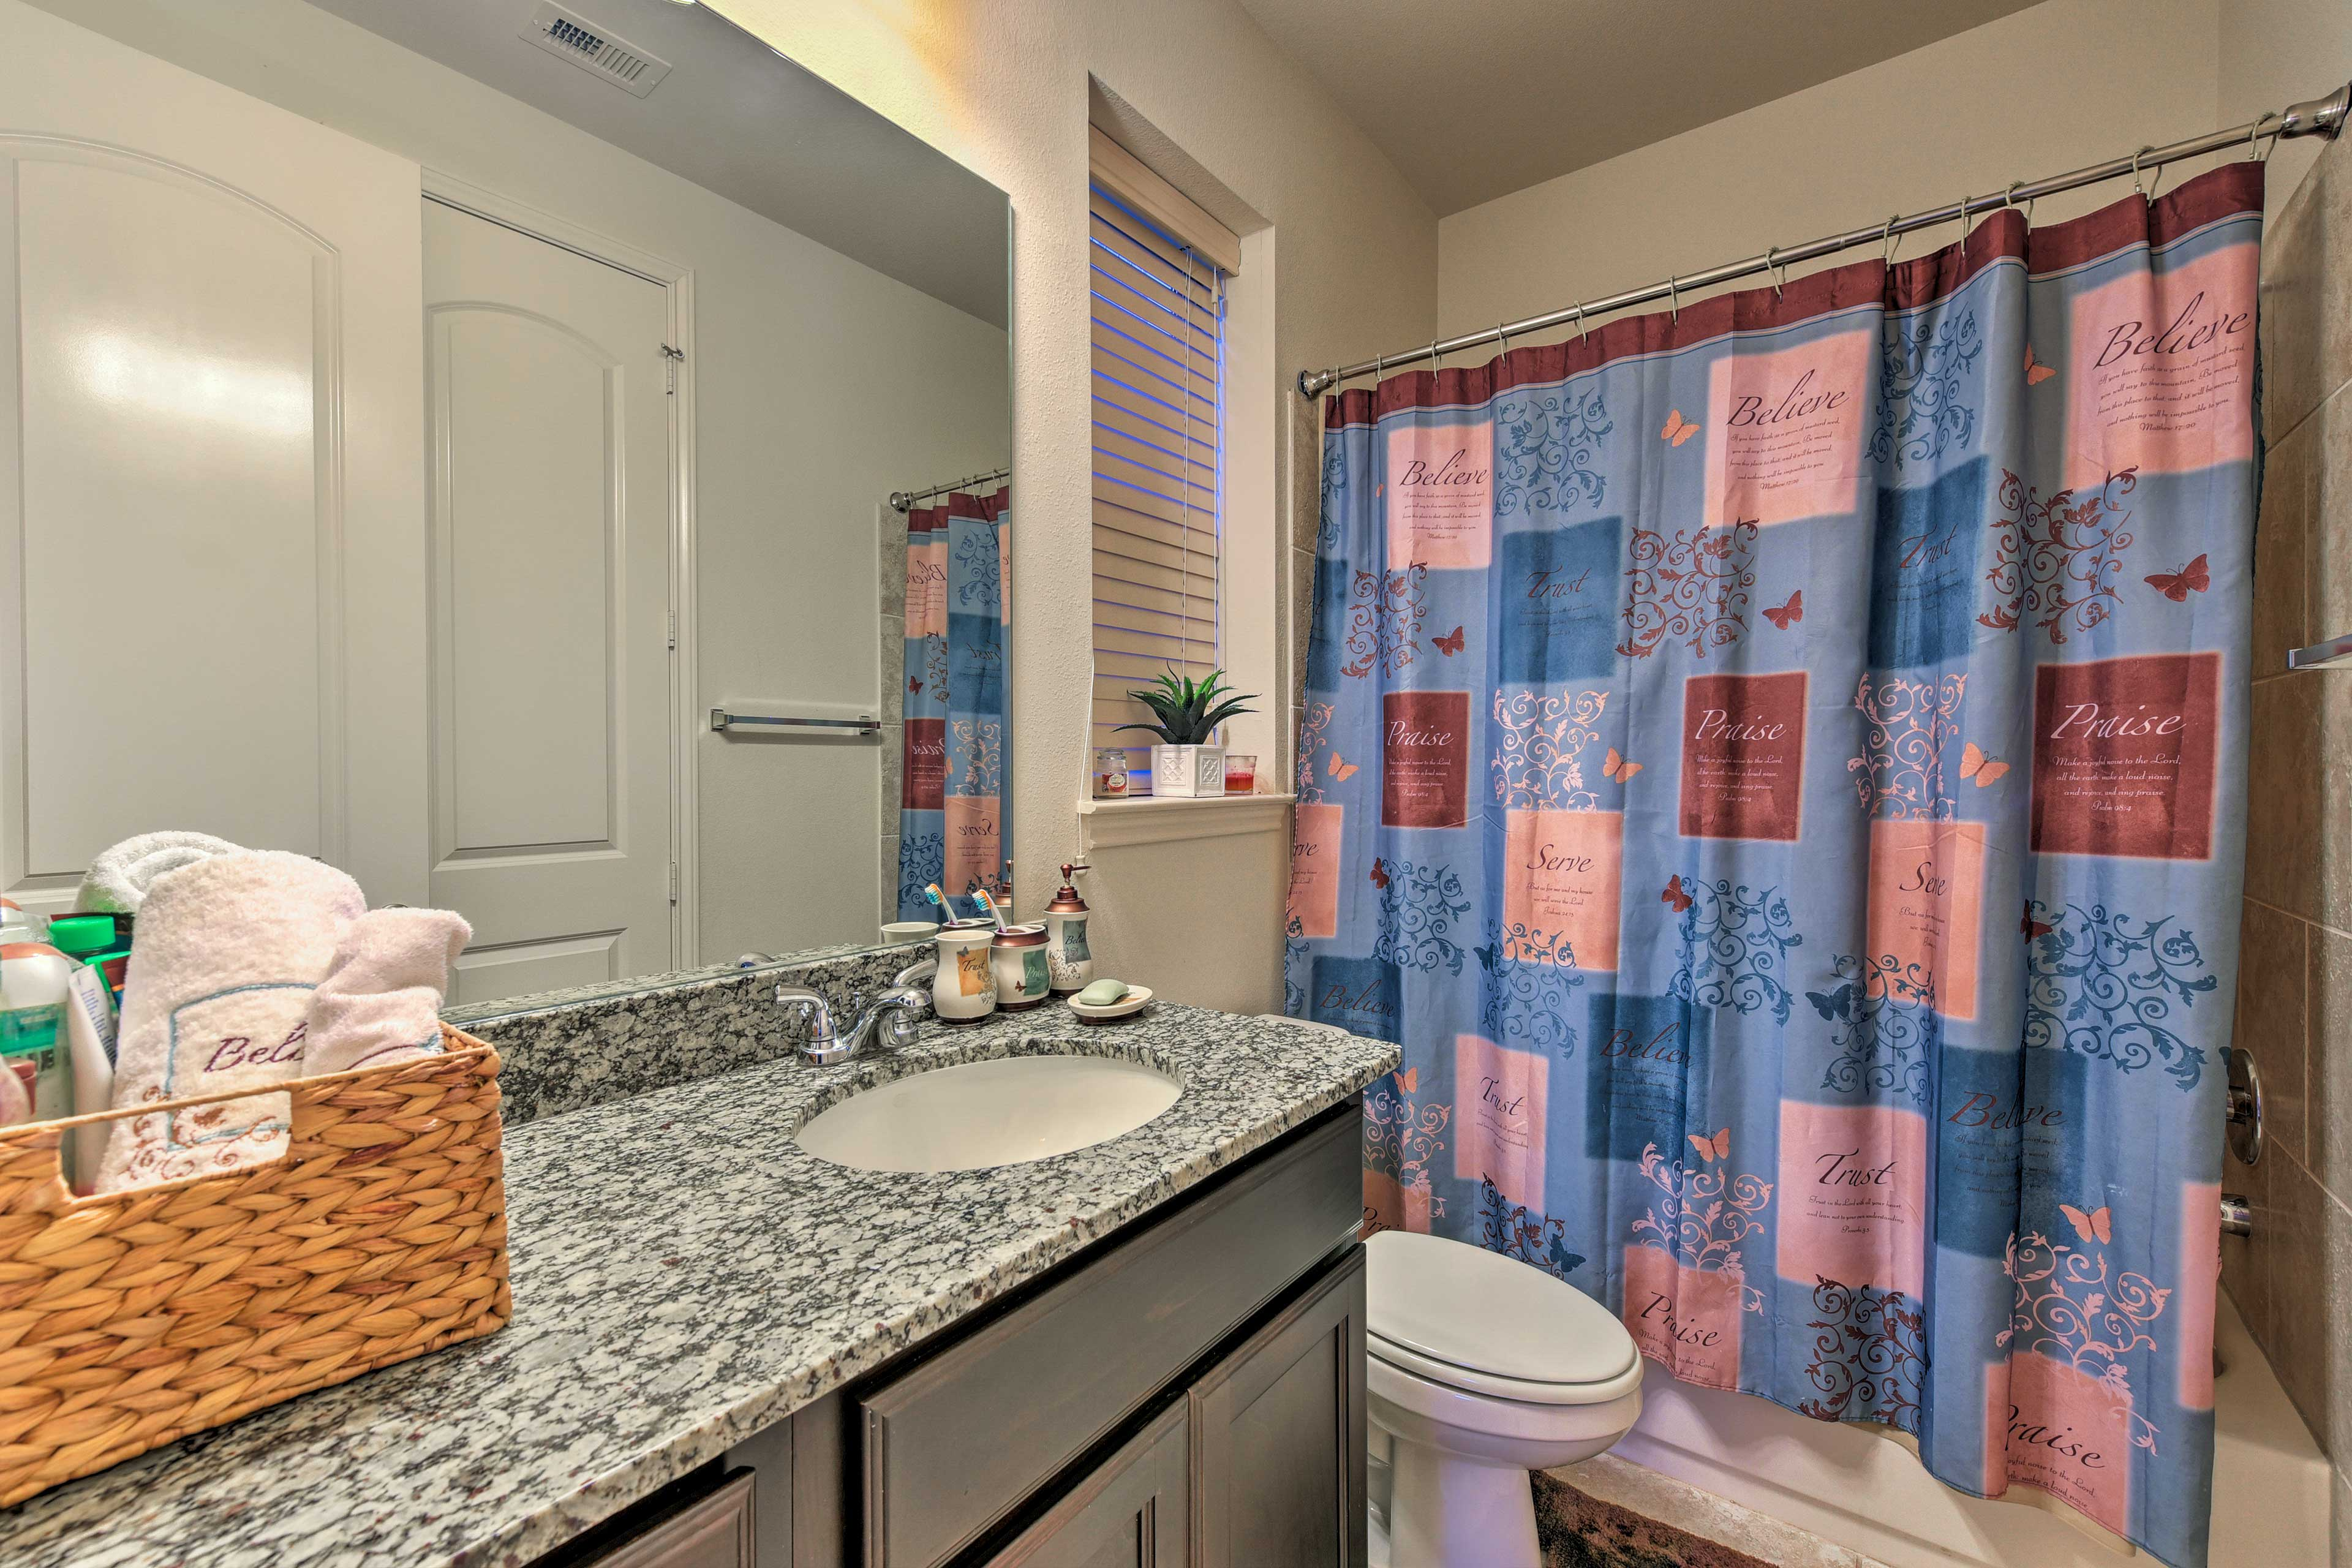 Each bathroom is stocked with fresh towels!